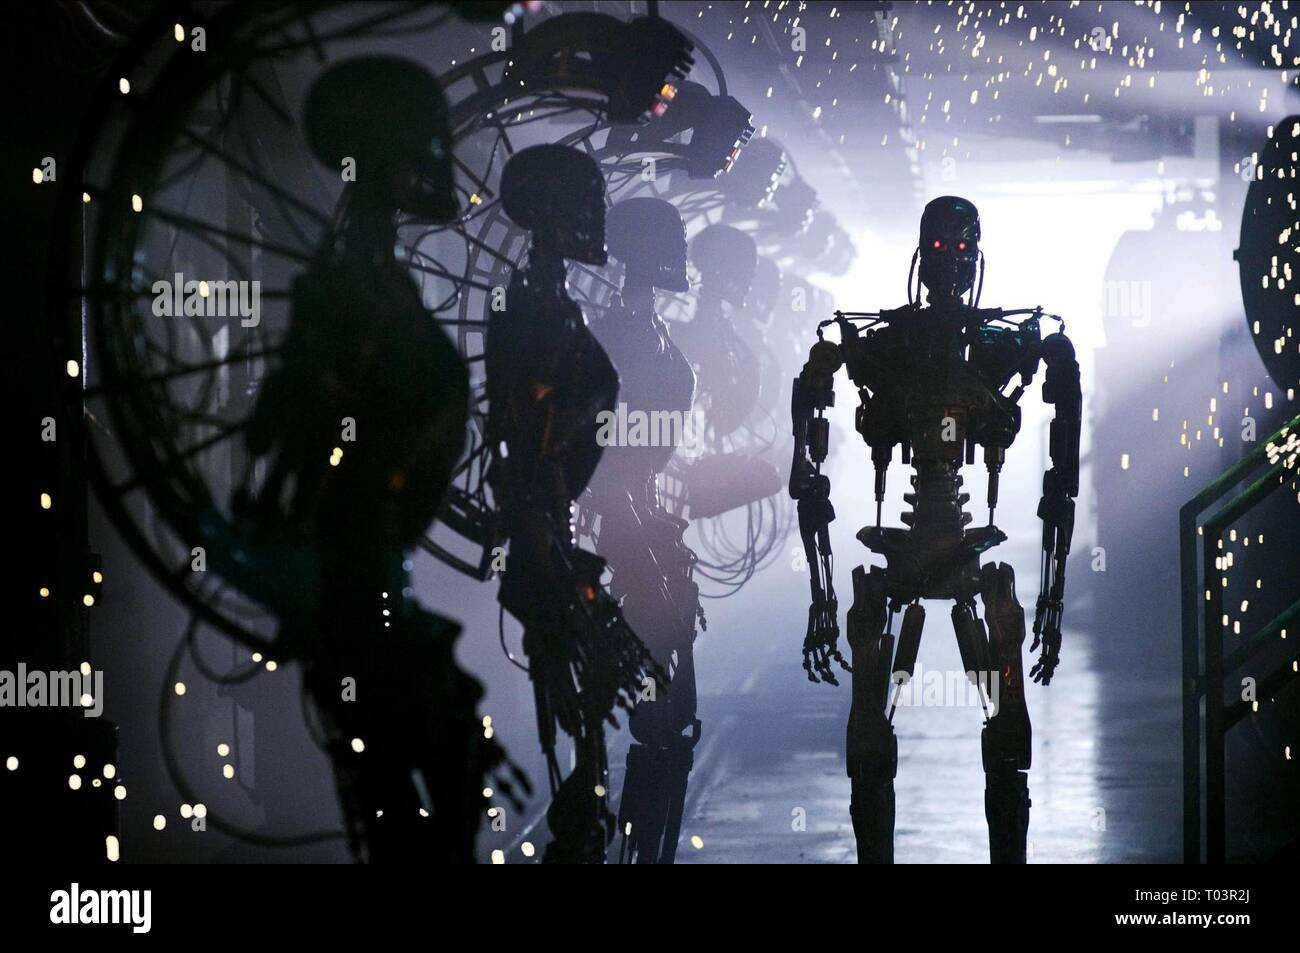 TERMINATOR SALVATION, T-800 TERMINATOR, 2009 - Stock Image